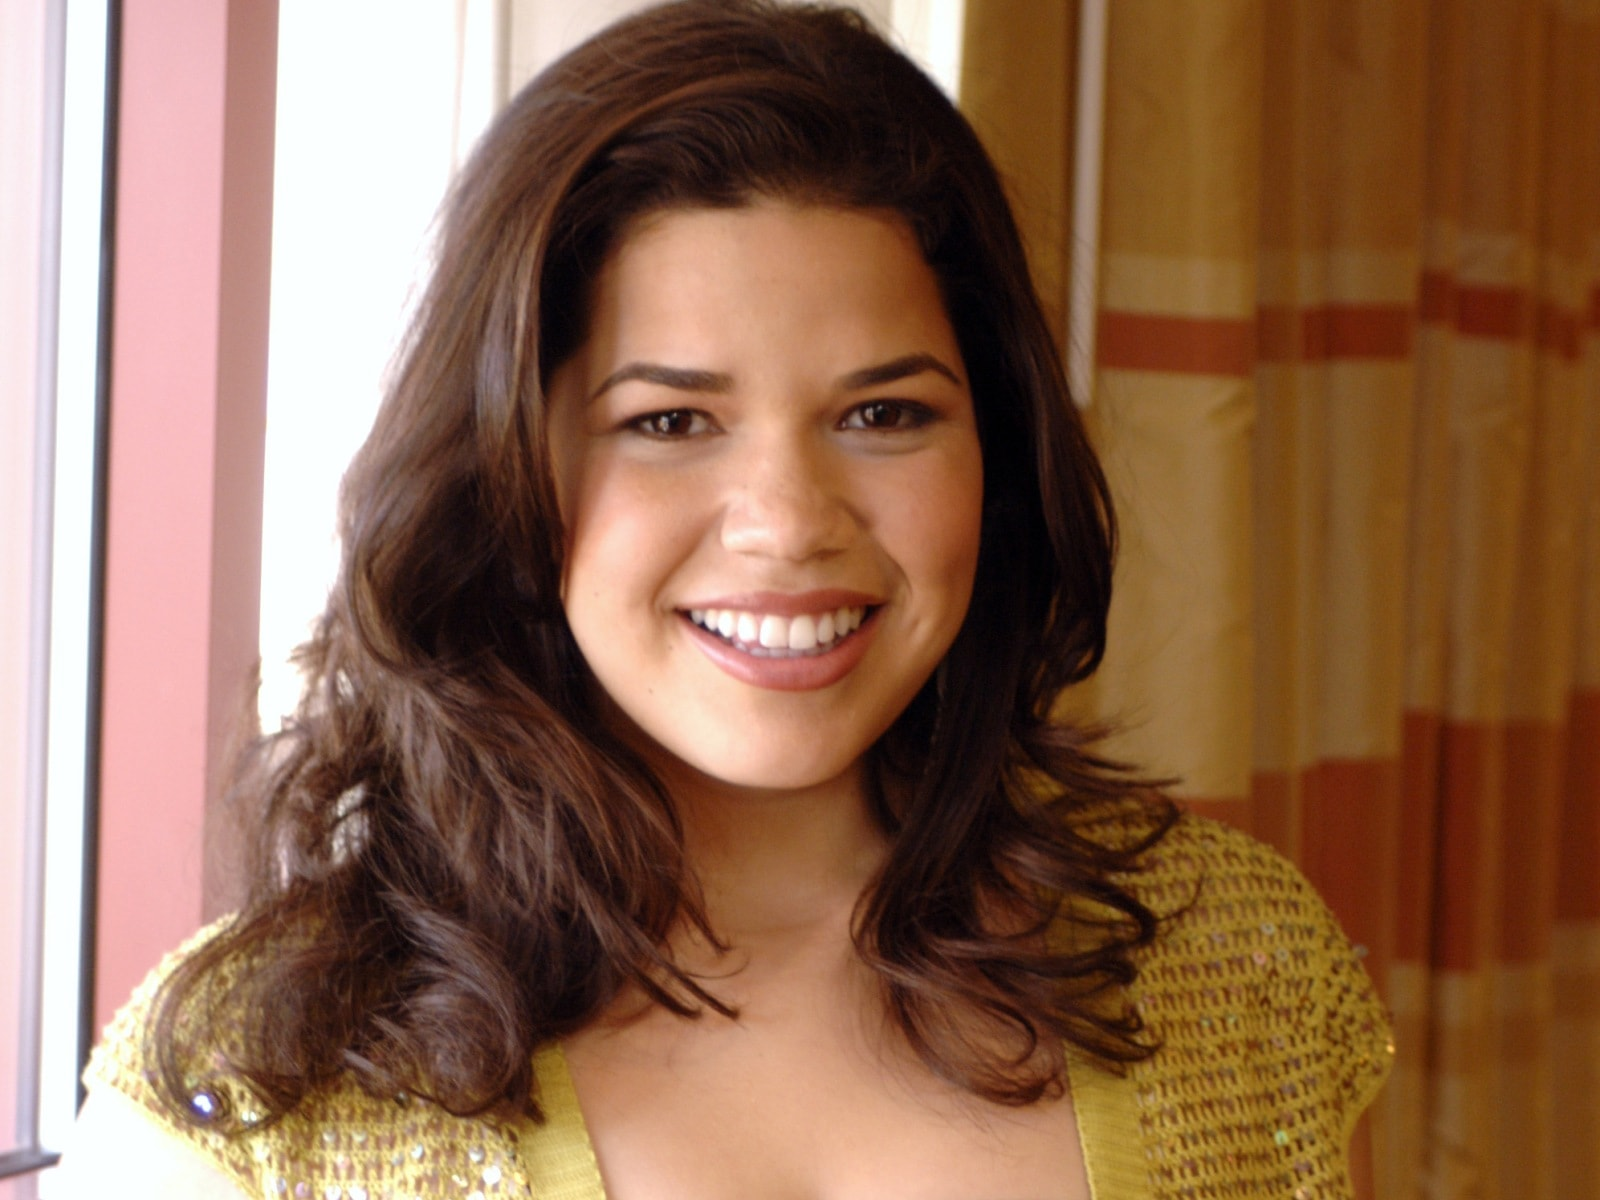 America Ferrera Wallpaper